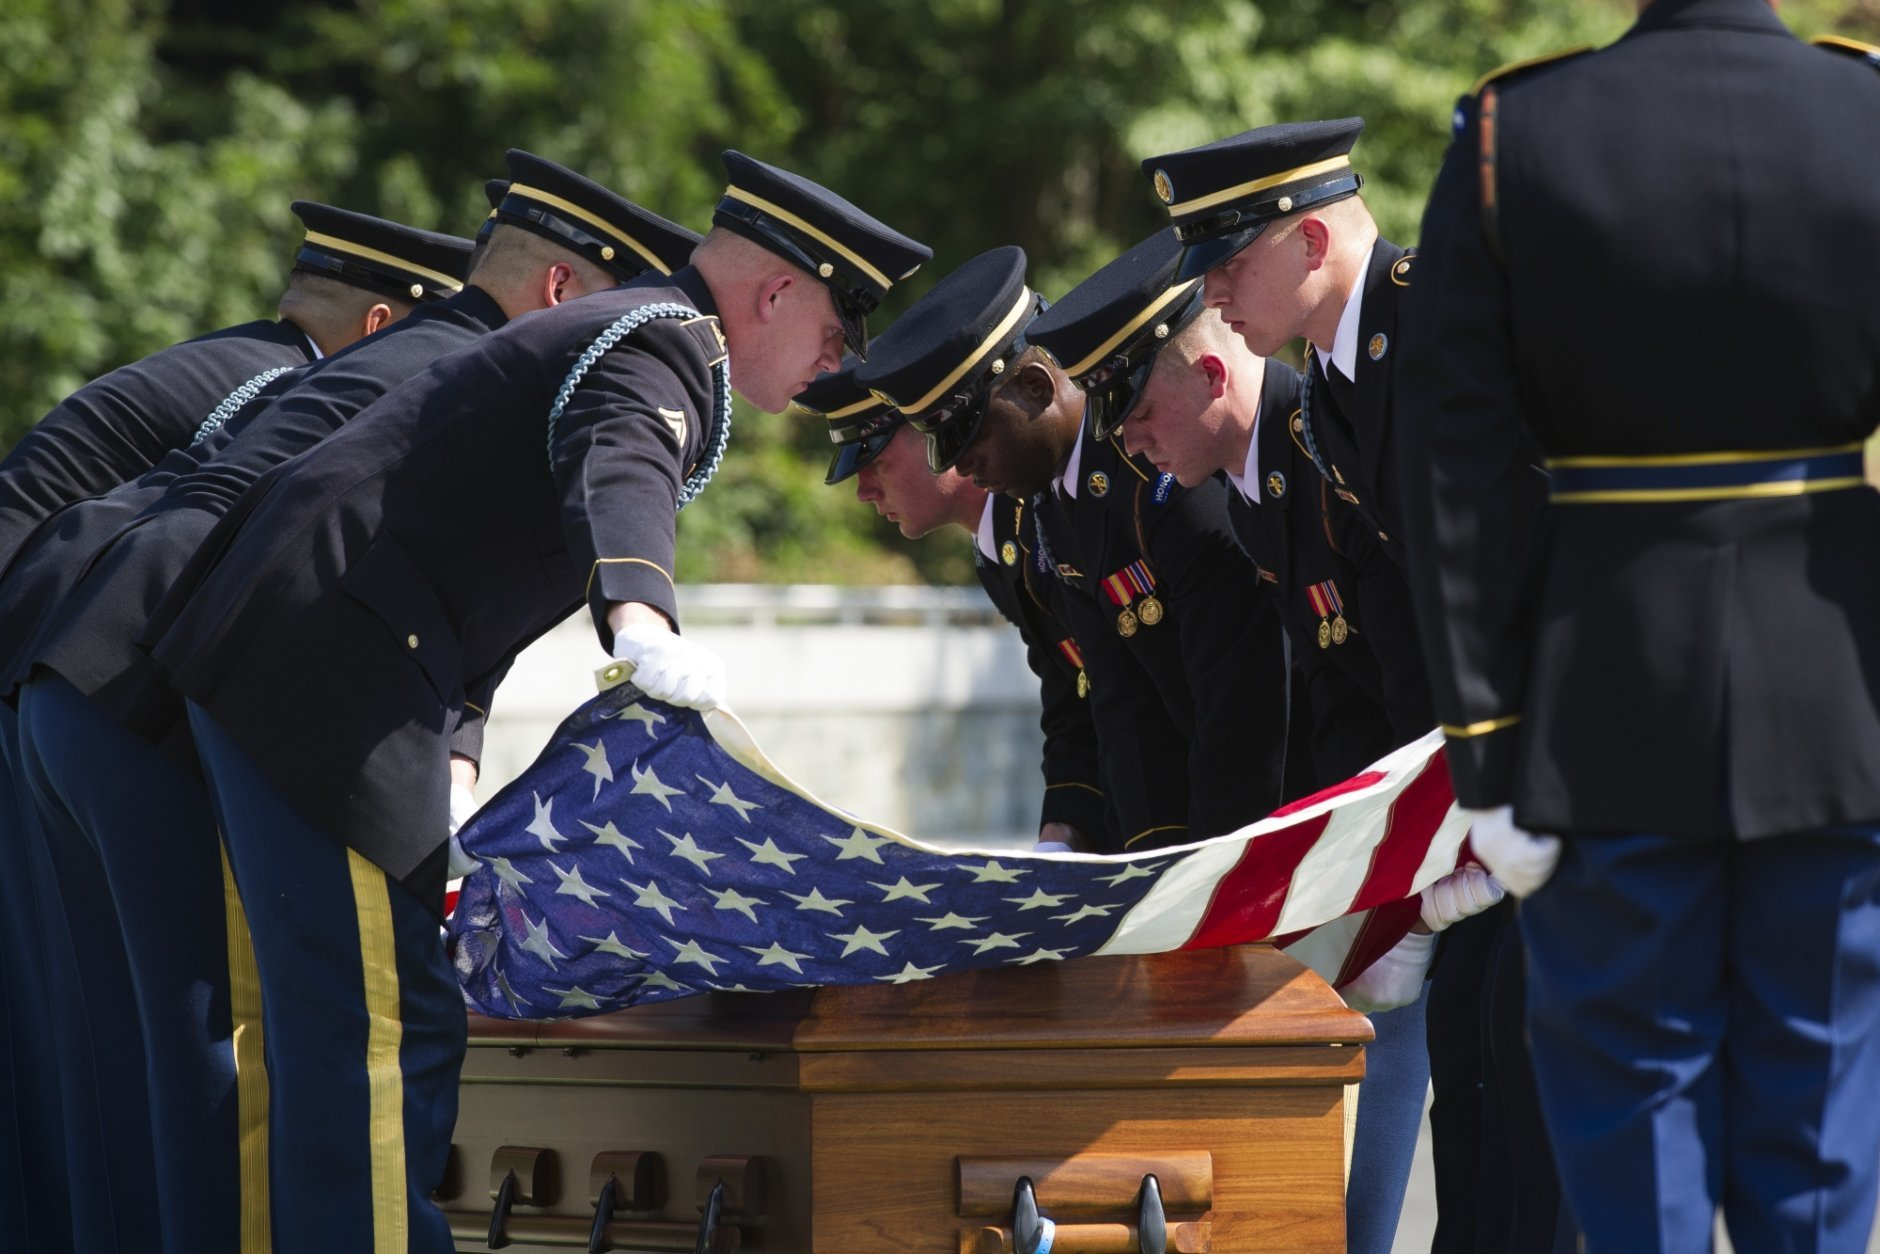 In this Sept. 6, 2018 photo, the 3rd Infantry Regiment, also known as the Old Guard, stretch the American flag over the casket containing the remains of one of two unknown Civil War Union soldiers at their grave at Arlington National Cemetery in Arlington, Va. The U.S. Army is being criticized for reburying the remains of two recently discovered Civil War soldiers without conducting DNA testing. The soldiers were found at Manassas National Battlefield, among severed limbs in what researchers believe was a surgeon's pit. Army officials said DNA testing was unjustified and reburied them as unknown soldiers at Arlington National Cemetery.  (AP Photo/Cliff Owen)